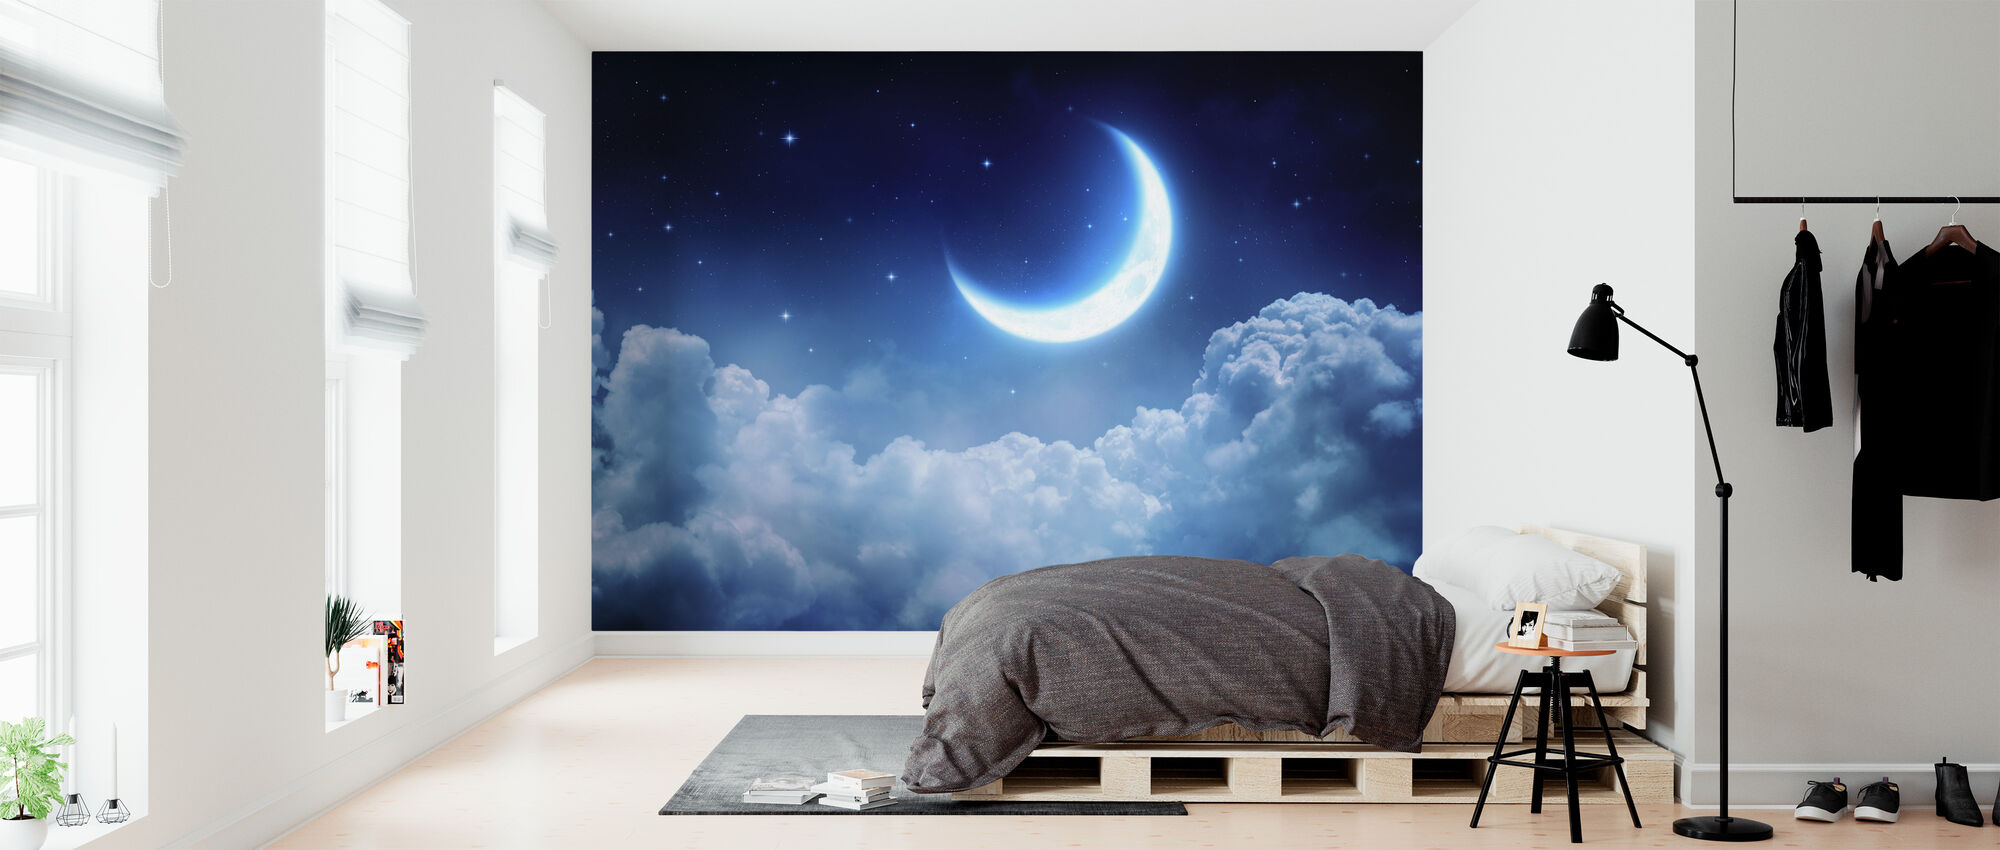 Dream View Moon - Wallpaper - Bedroom